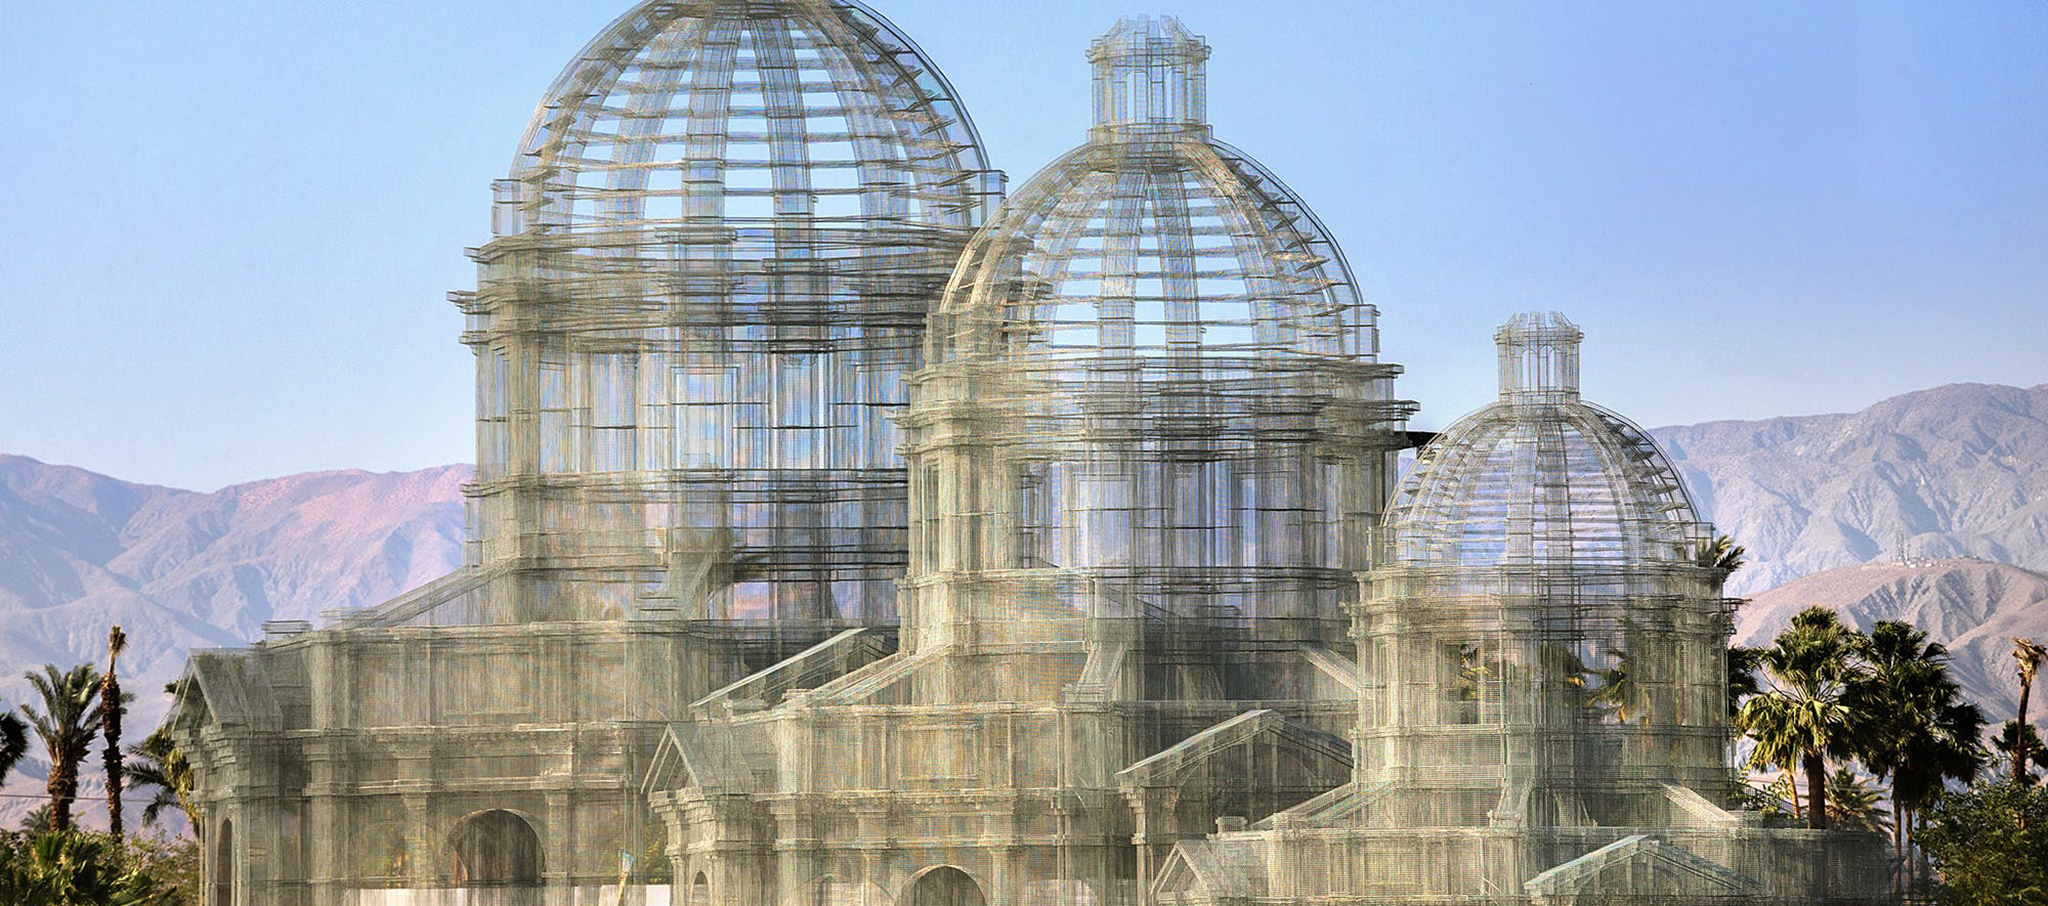 Etherea is Edoardo Tresoldi biggest installation to date. Photograph @ Roberto Conte